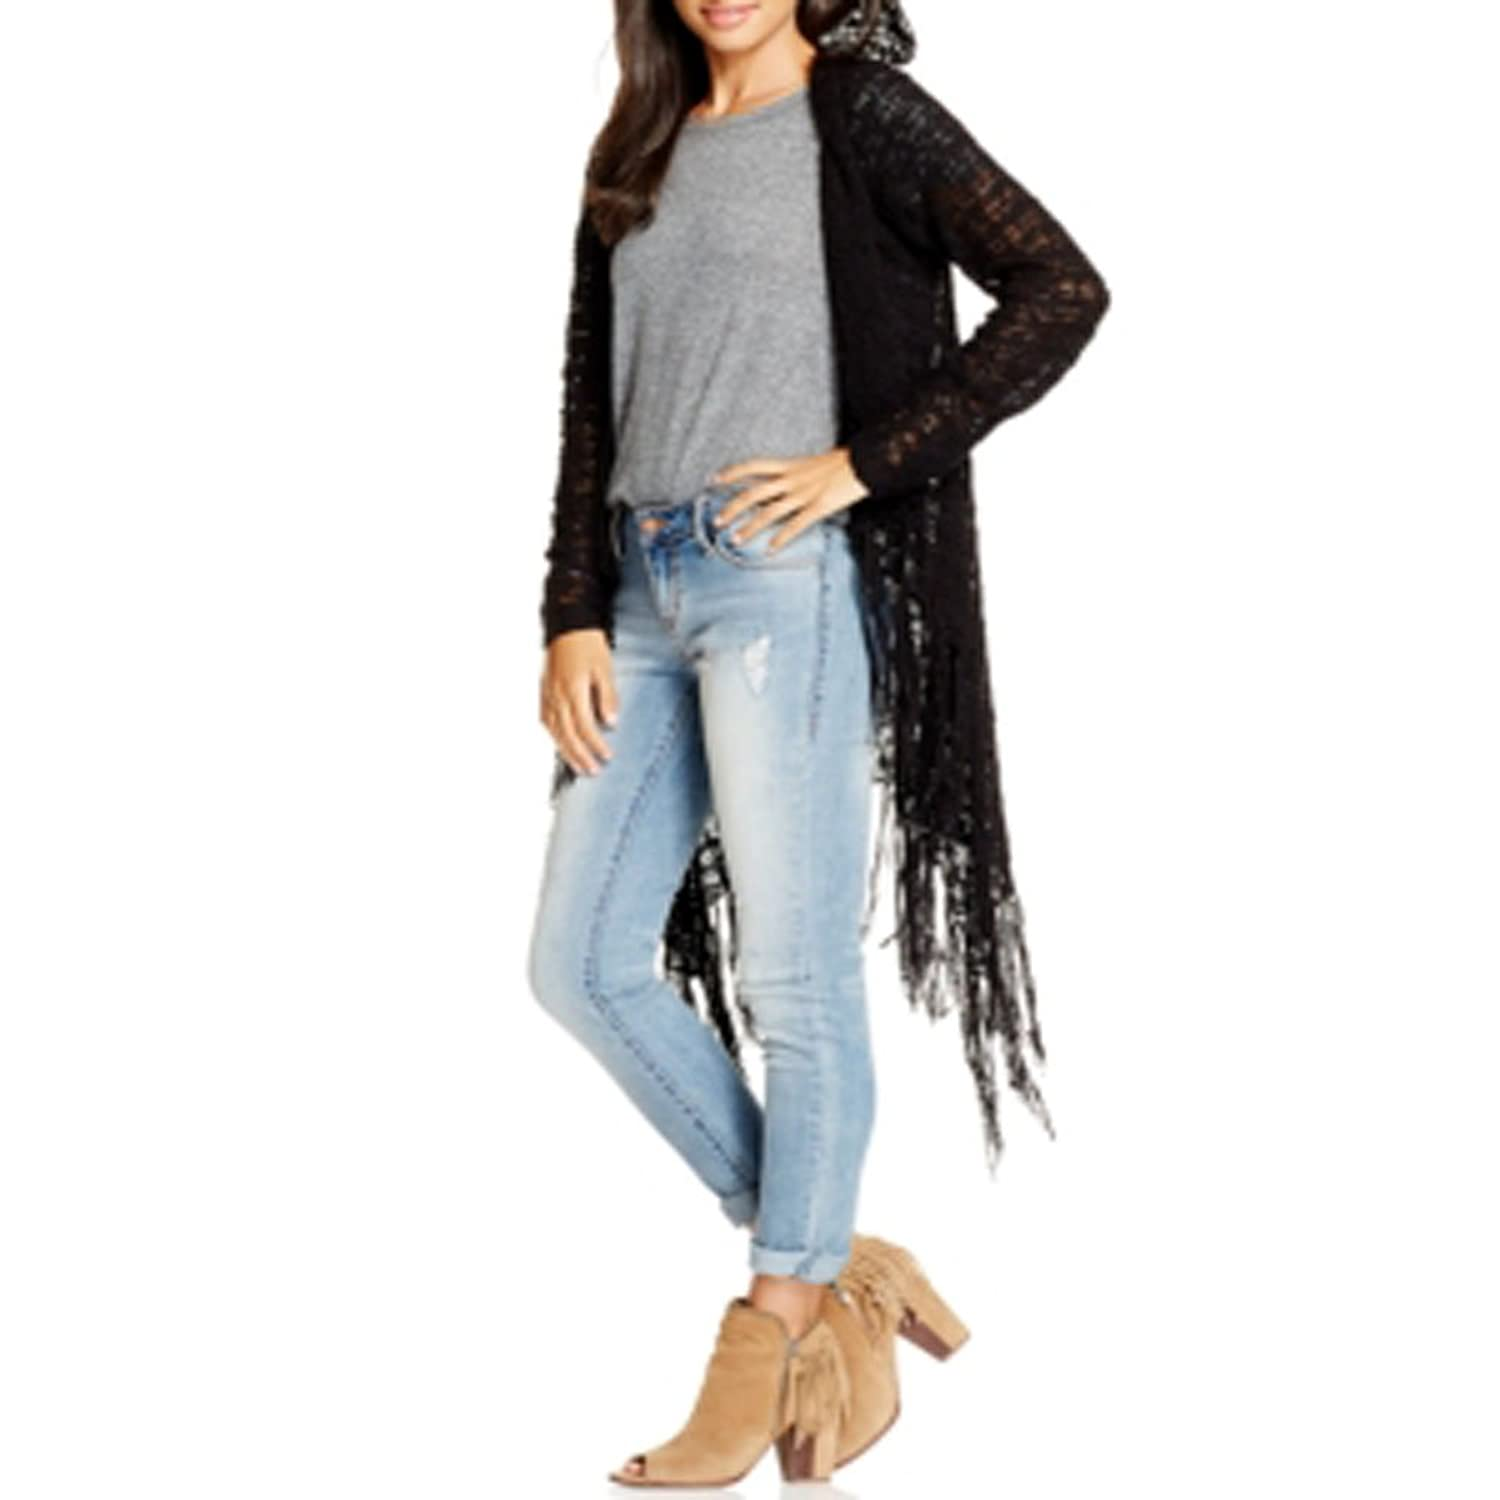 American Rag Hooded Open-Knit Fringed Sweater Black X-Small